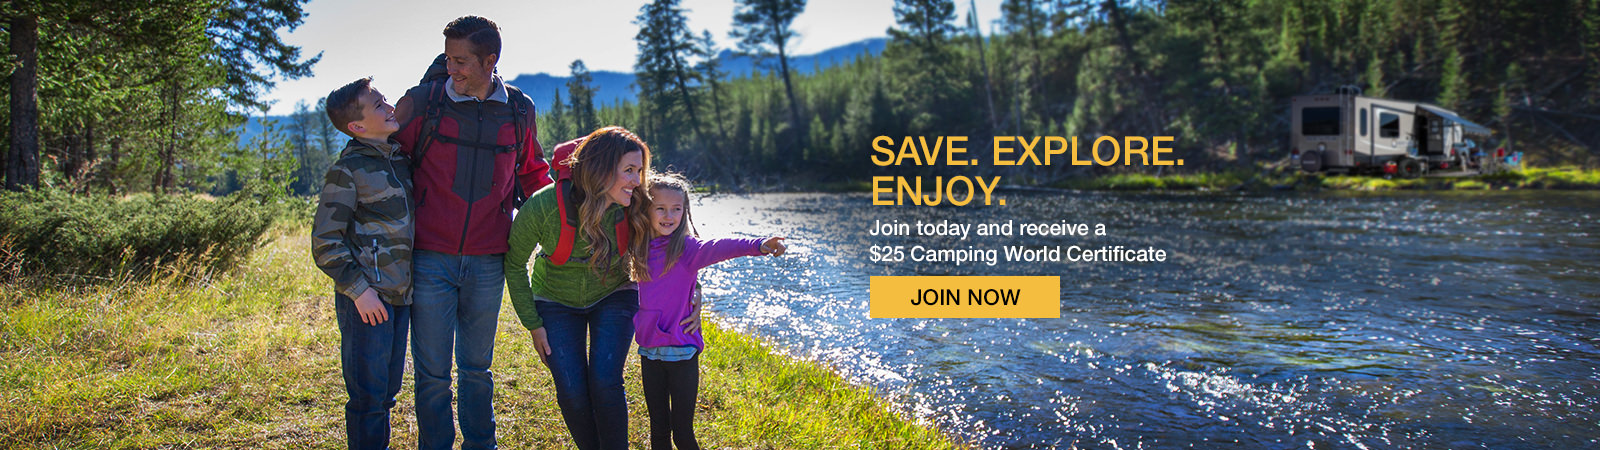 Join Camping World